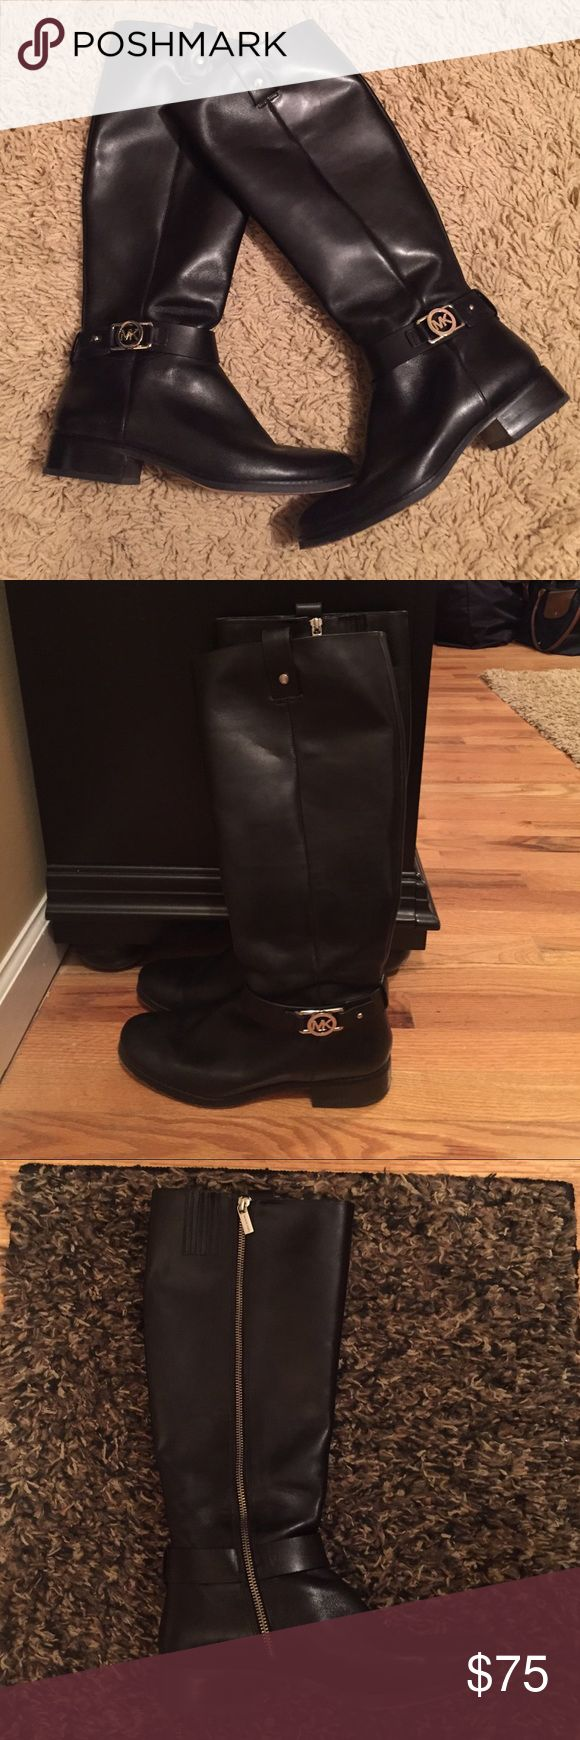 Michael Kors Tall Riding Boots Authentic Michael Kors tall riding boot in black. Only worn twice and in near PERFECT condition! A must have for the fall/winter season! Size 9 MICHAEL Michael Kors Shoes